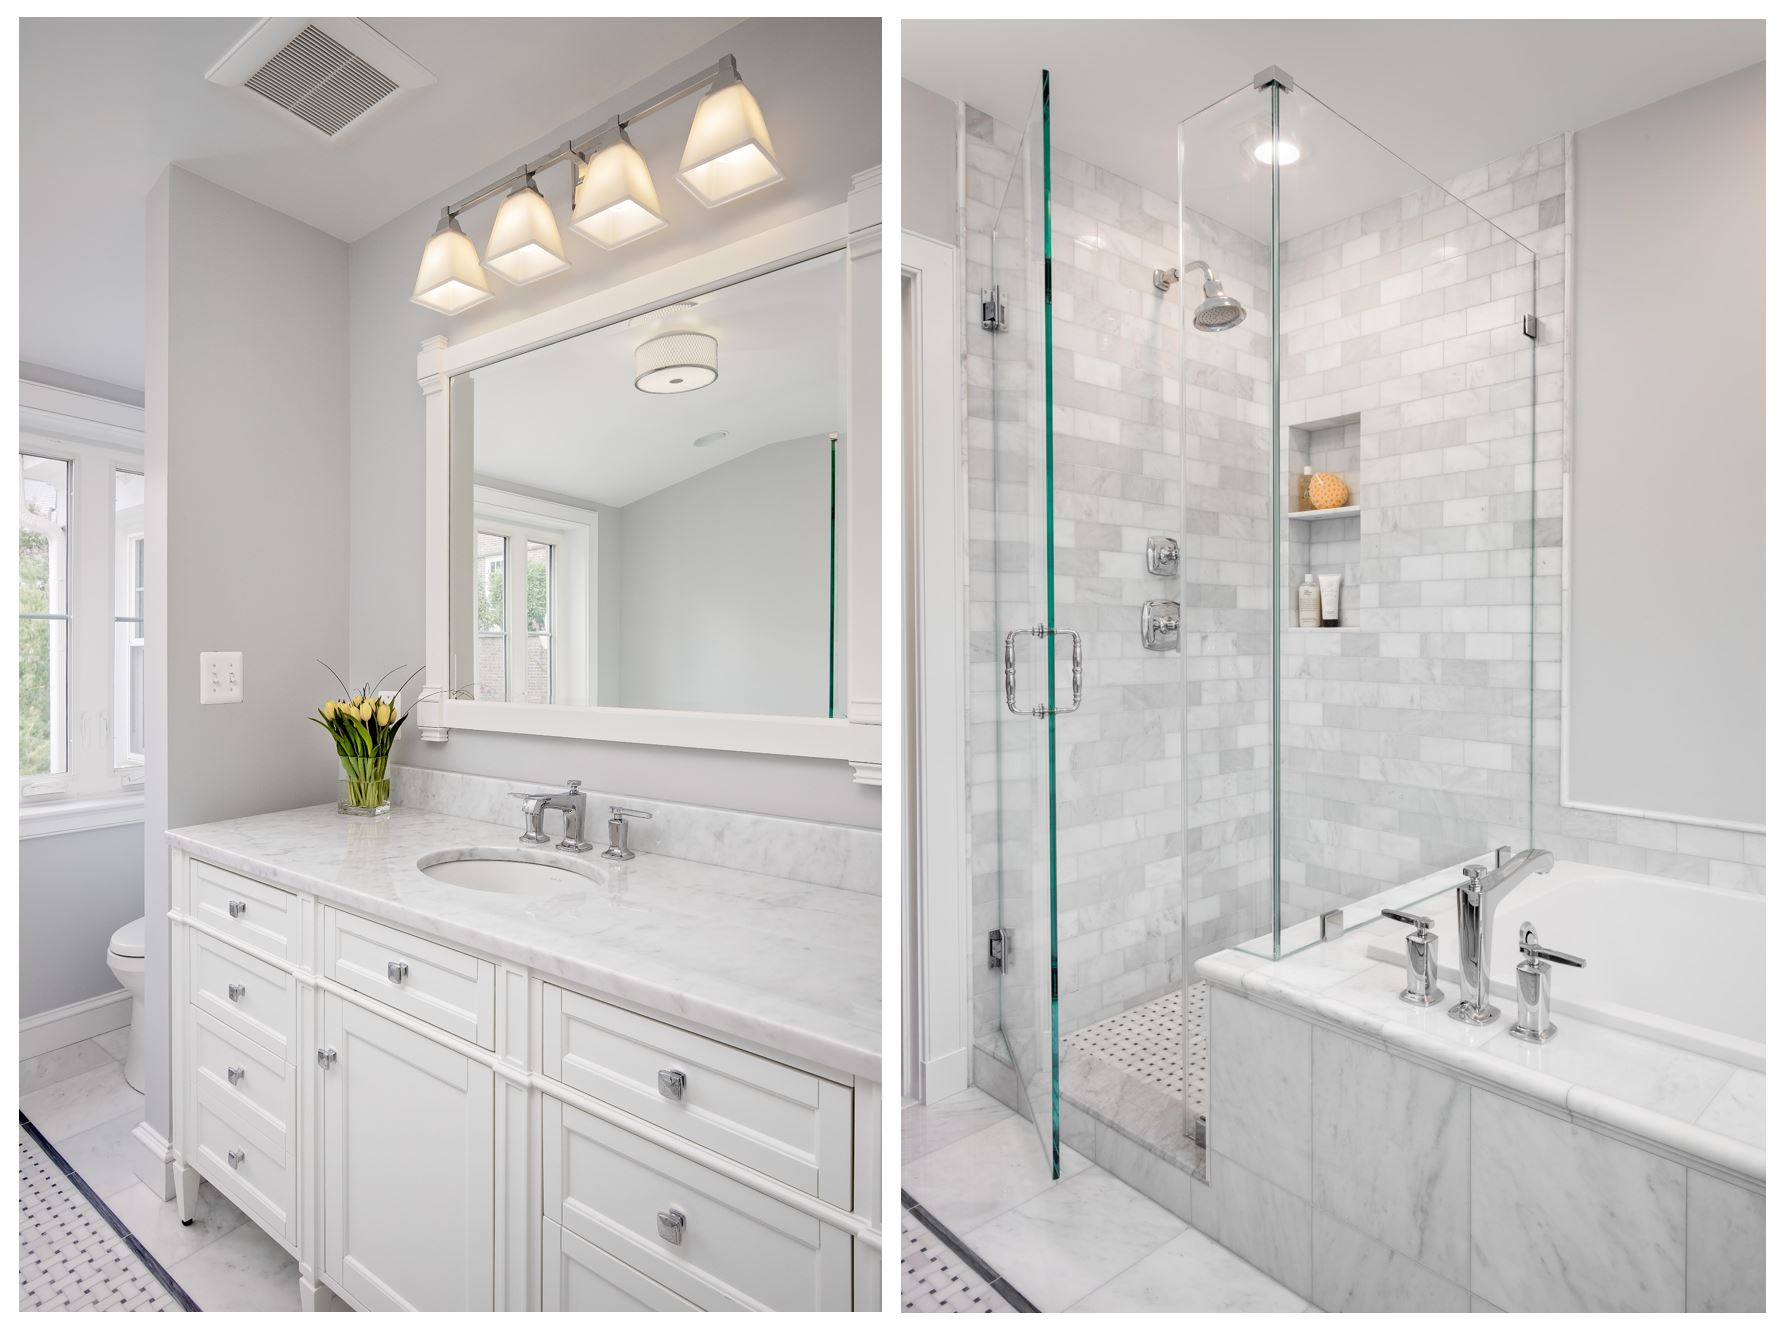 Clean white and silver bathroom remodeling collage